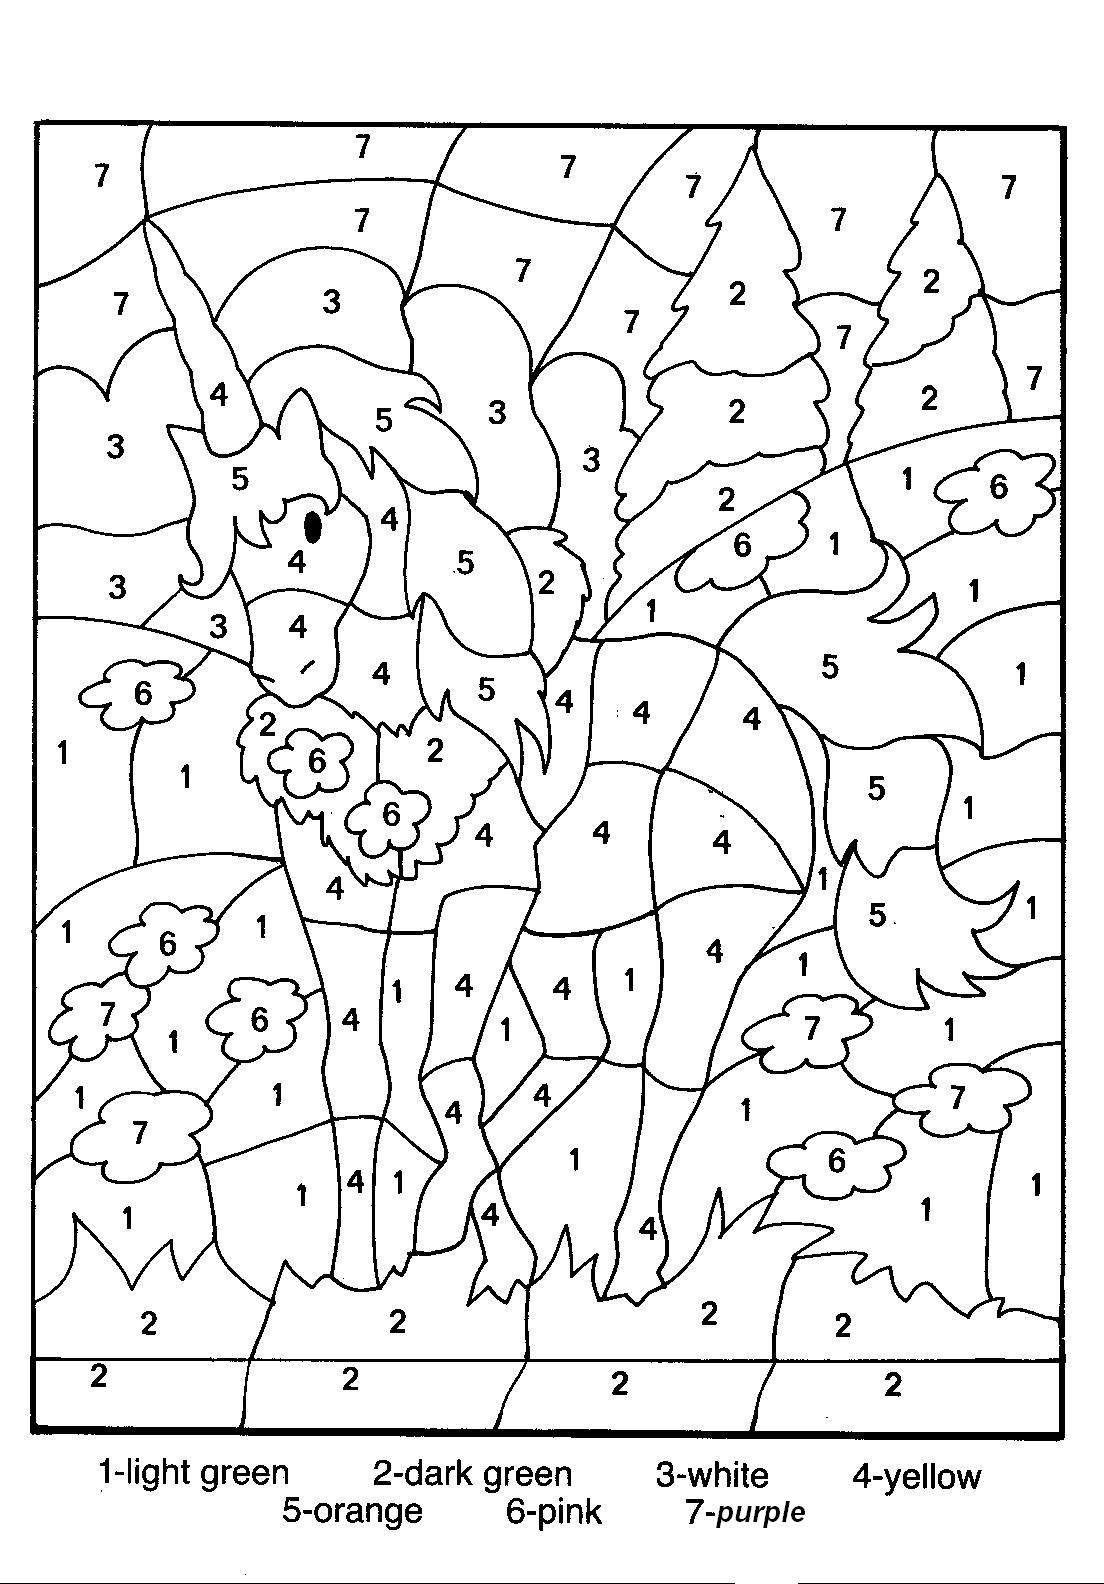 coloring pages with colors - photo#22